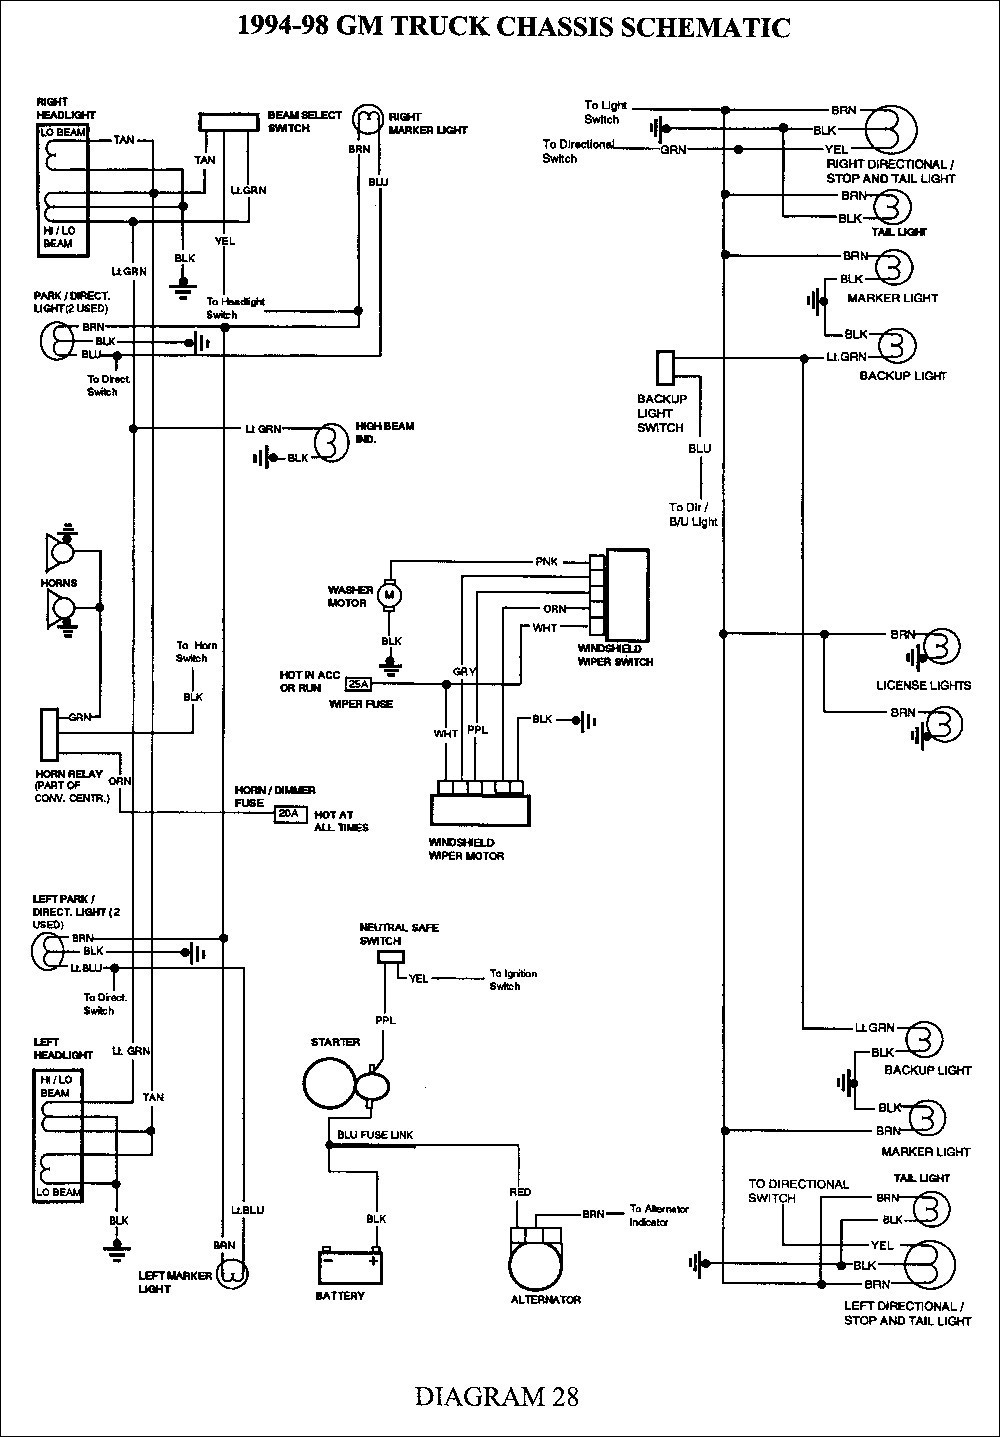 medium resolution of chevy c5500 wiring diagram wiring diagram schematics rh ksefanzone com 2004 chevy c5500 wiring diagram 2006